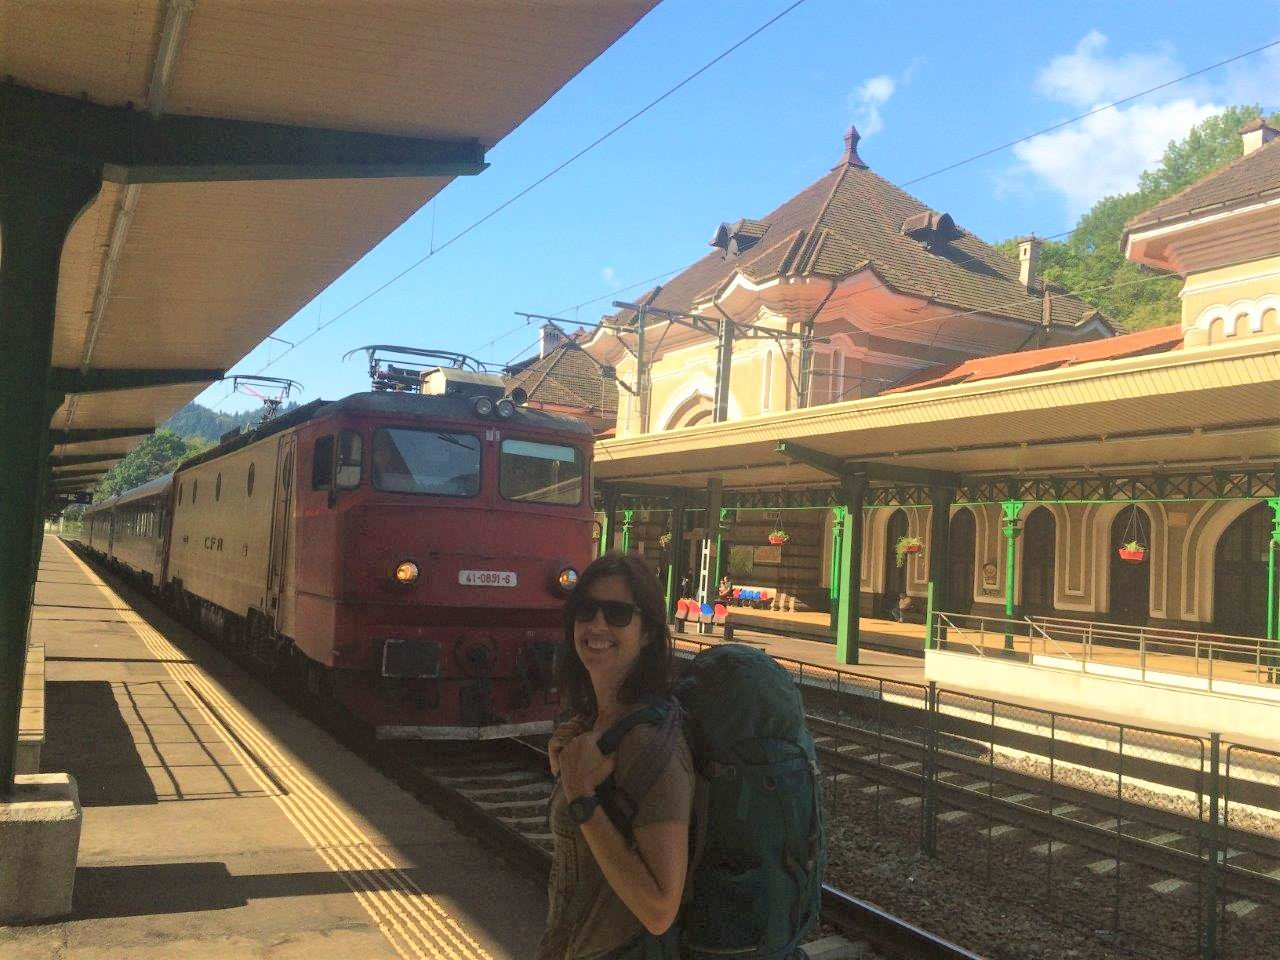 Waiting for the train at the Sinaia train station